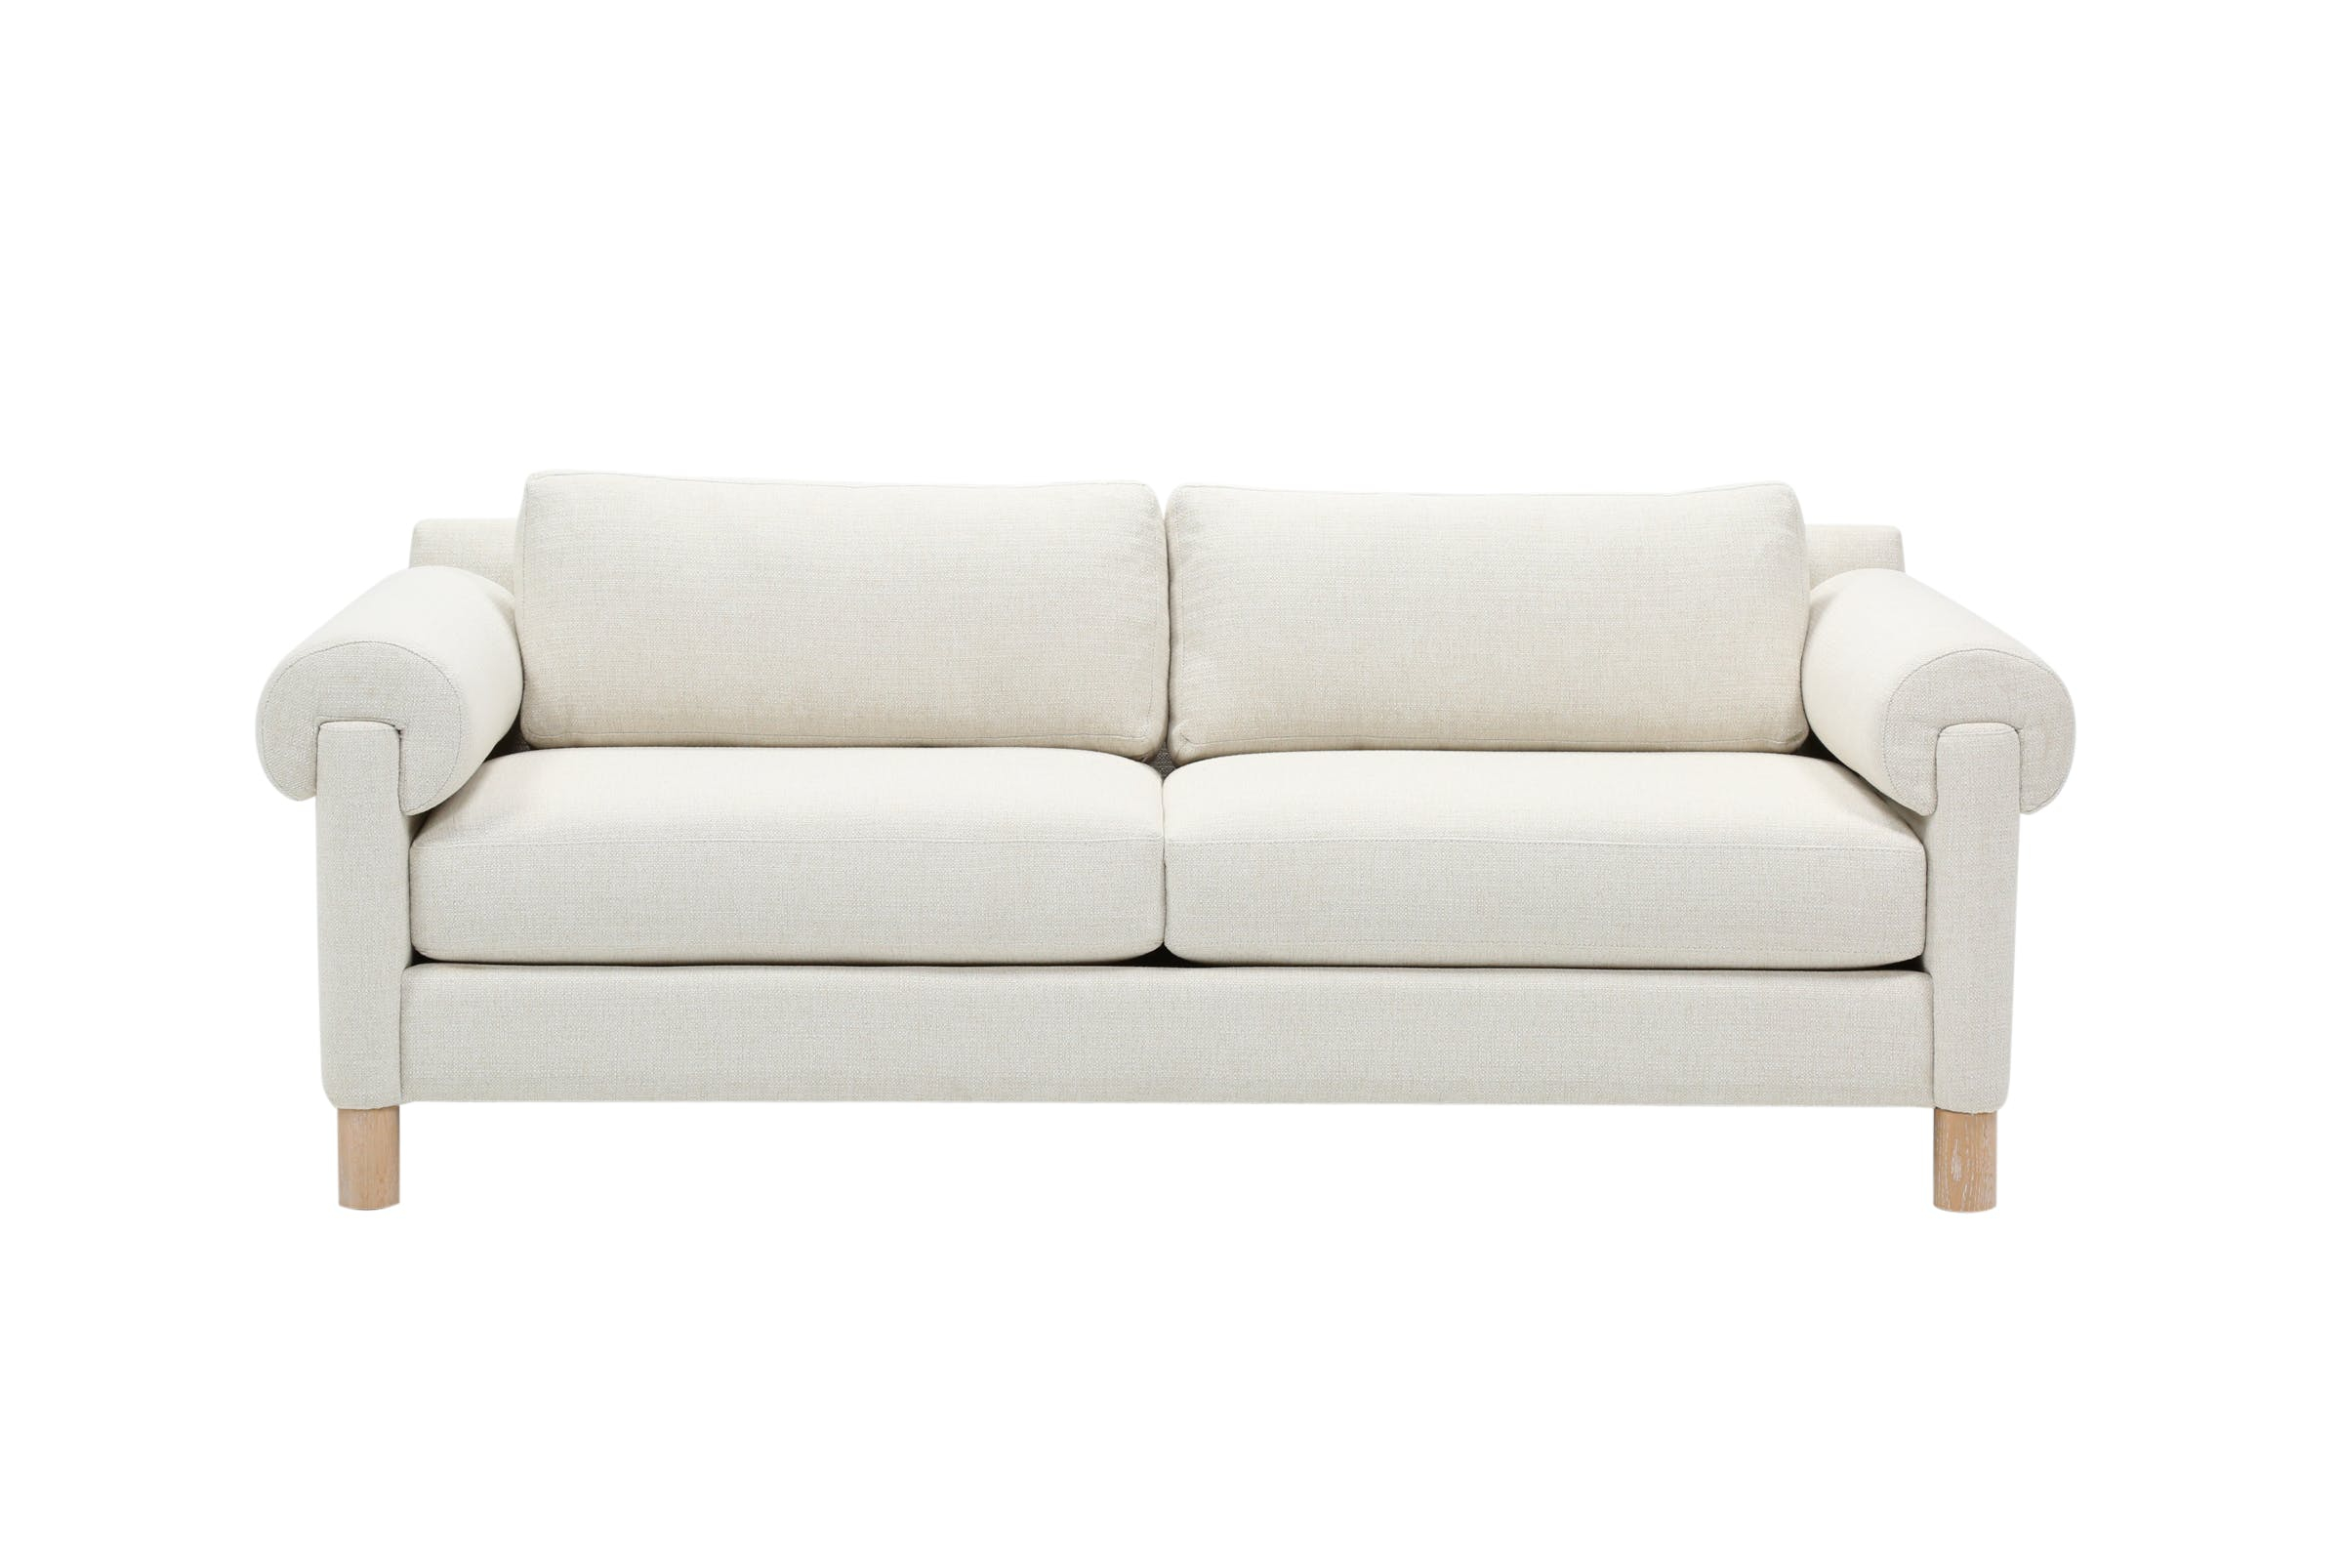 Nate Berkus Just Launched A Home Collection With Hubby Jeremiah In Liv Arm Sofa Chairs By Nate Berkus And Jeremiah Brent (Photo 10 of 25)